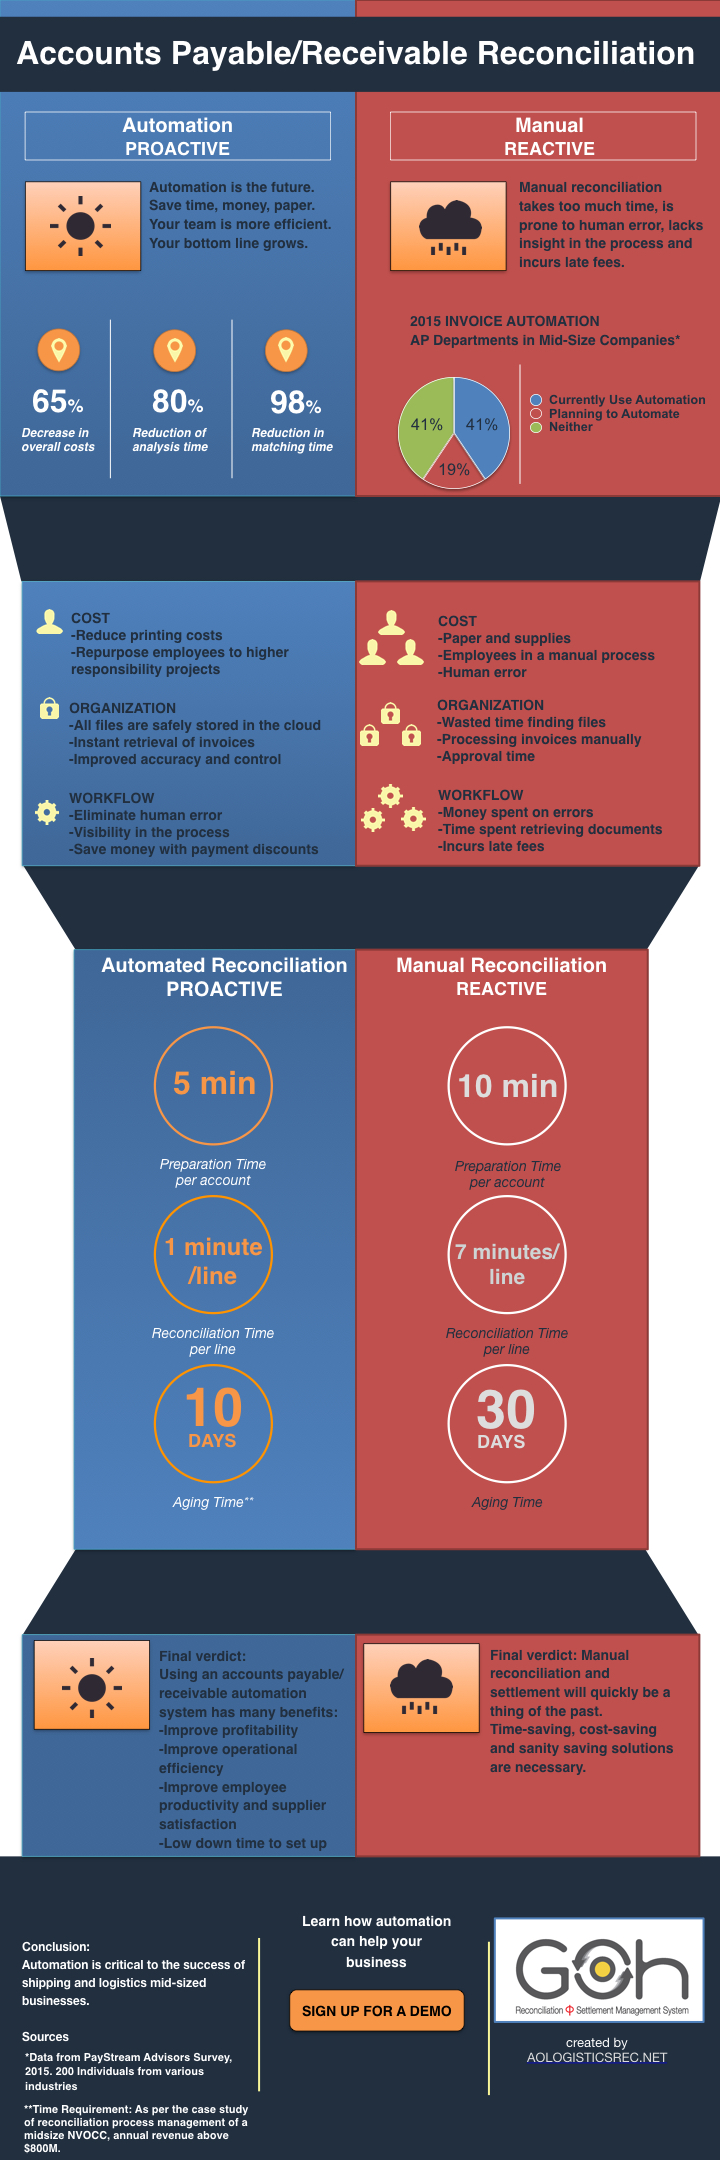 benefits of automating a manual process